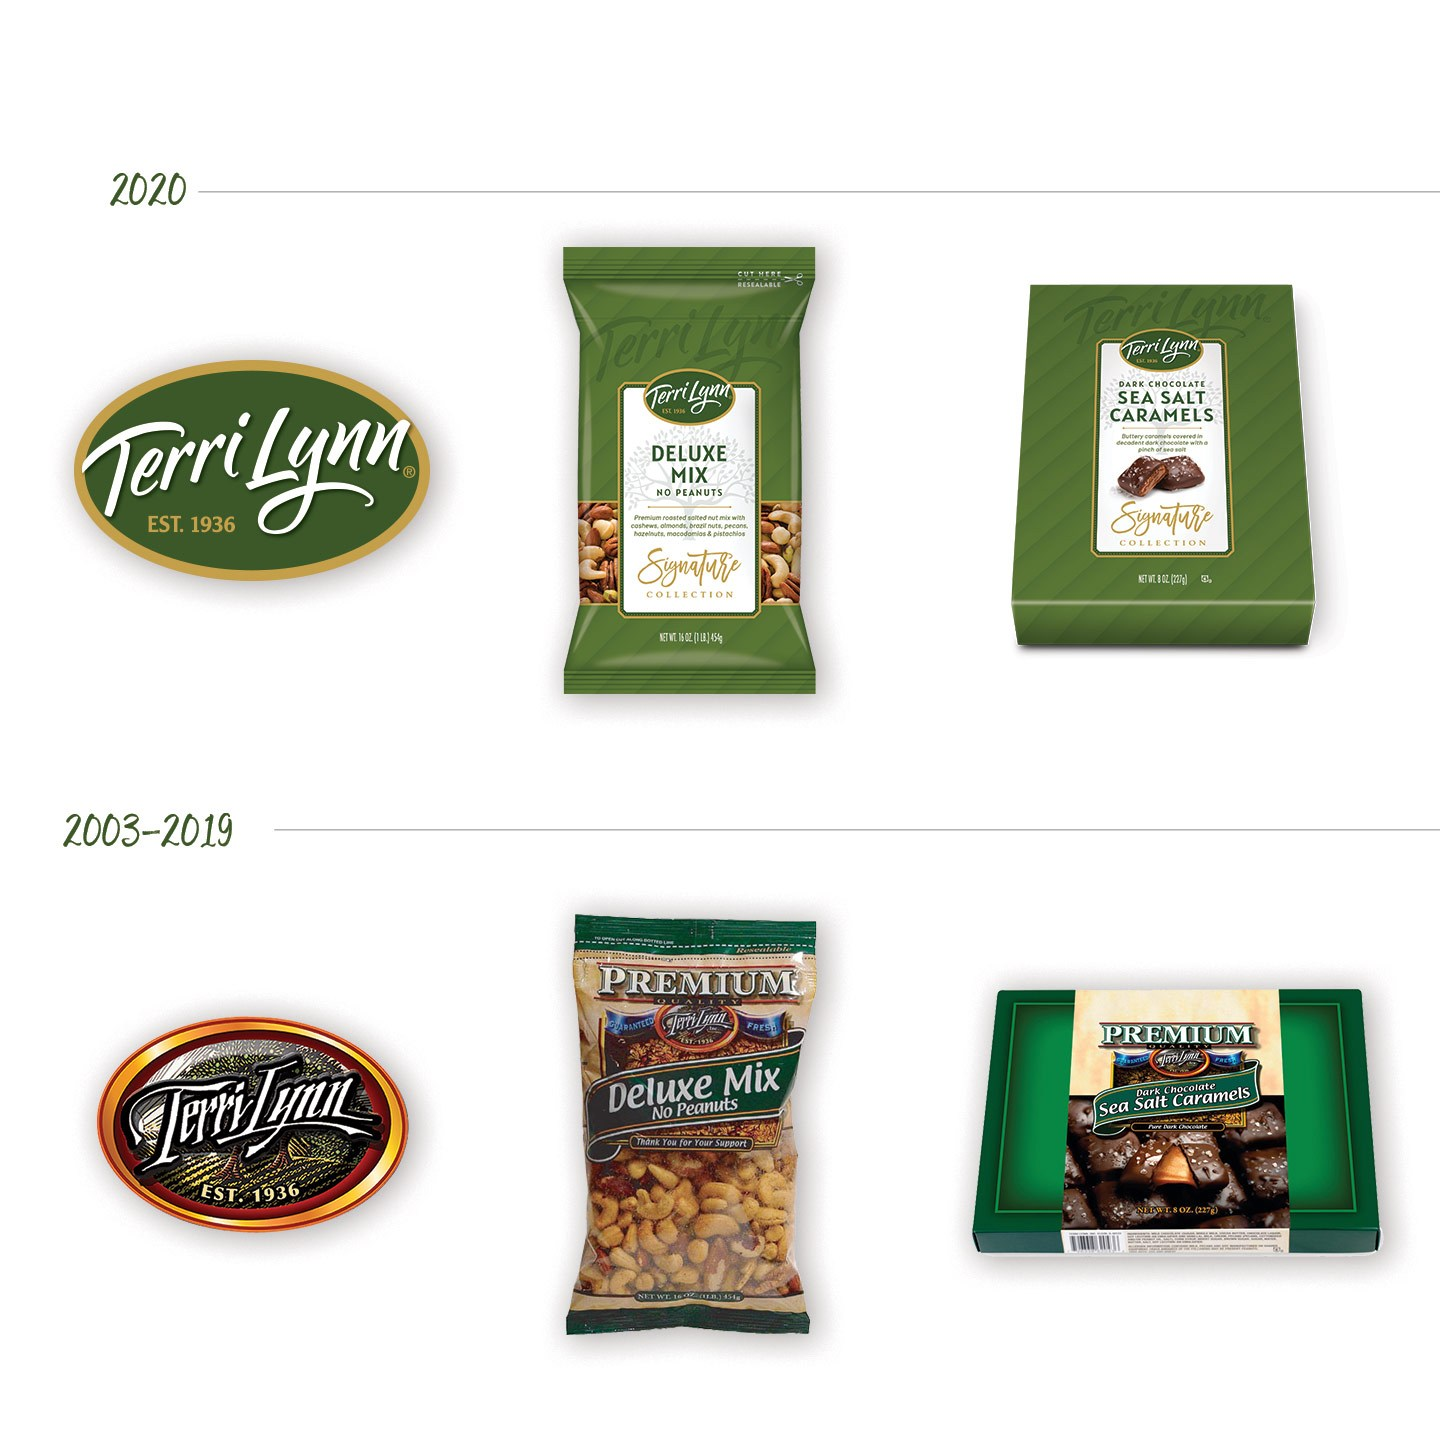 Terri Lynn Old and New Packaging